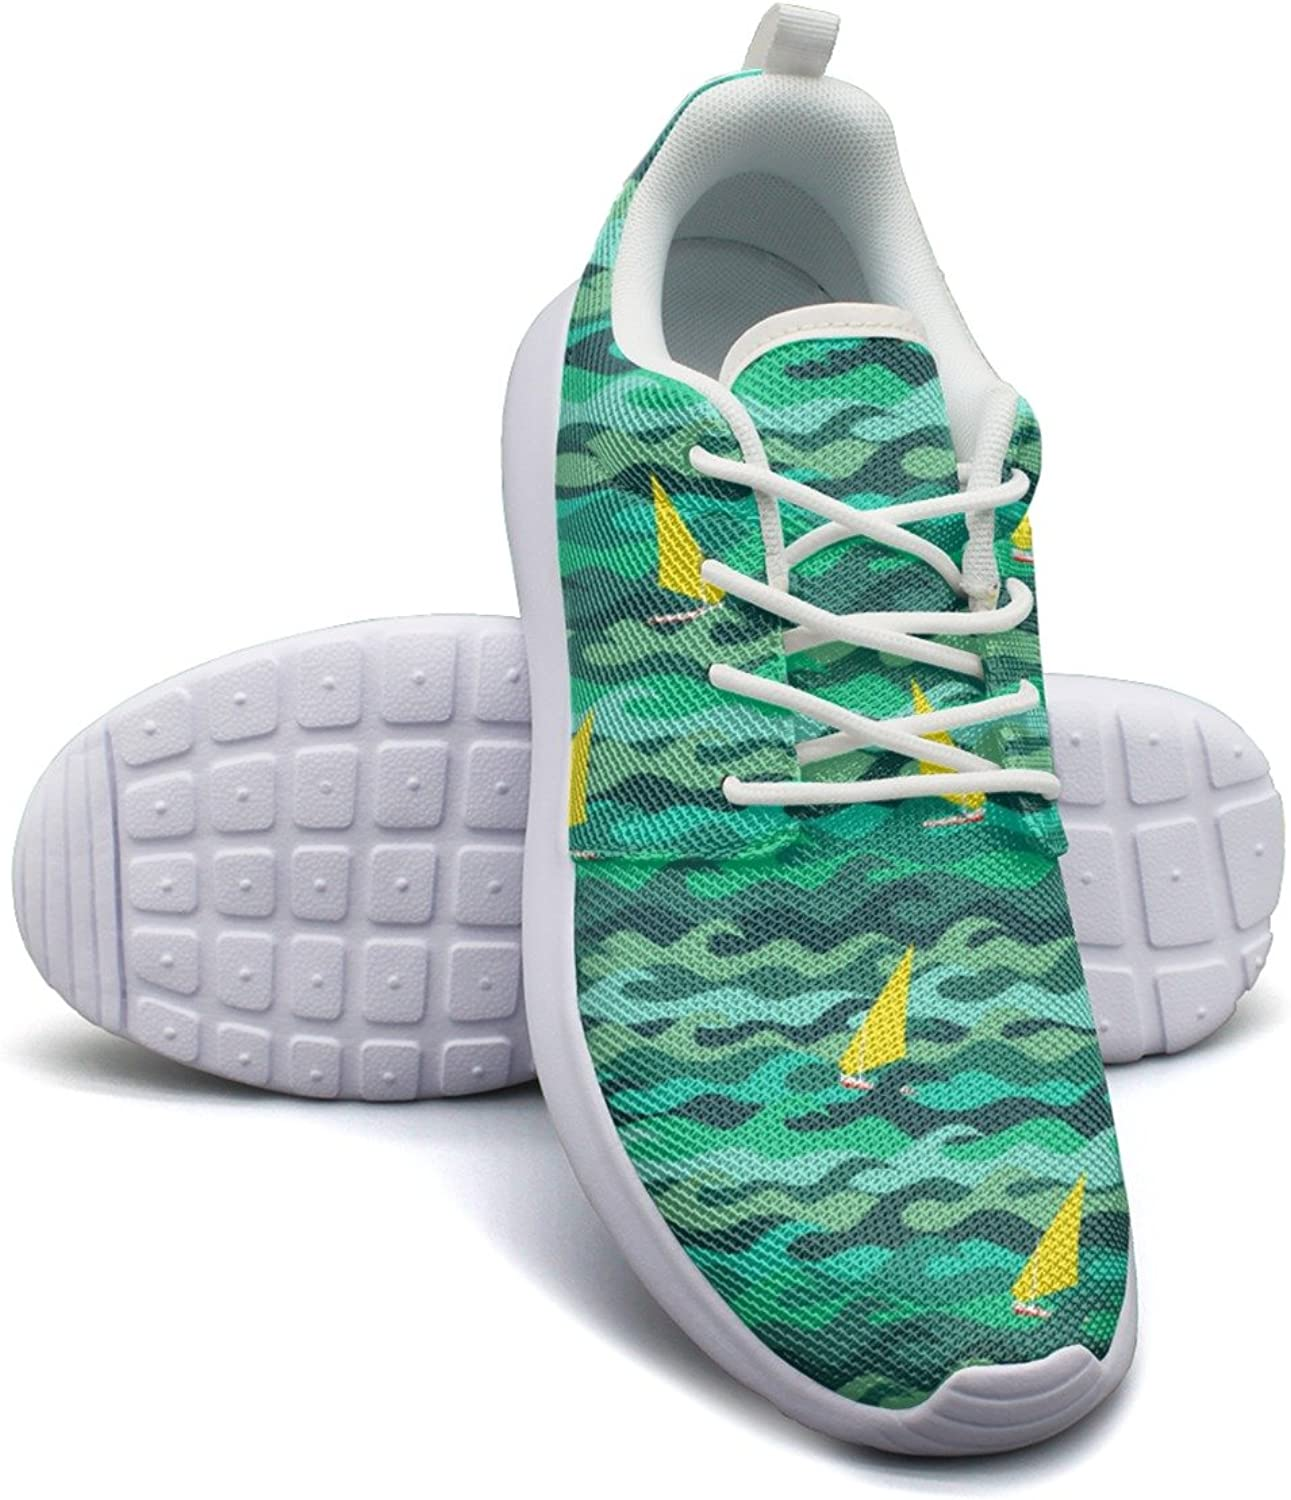 Made Of Sea Waves And Yachts Women's Fashion Sneakers shoes Retro Mesh Lightweight Athletic Sneakers